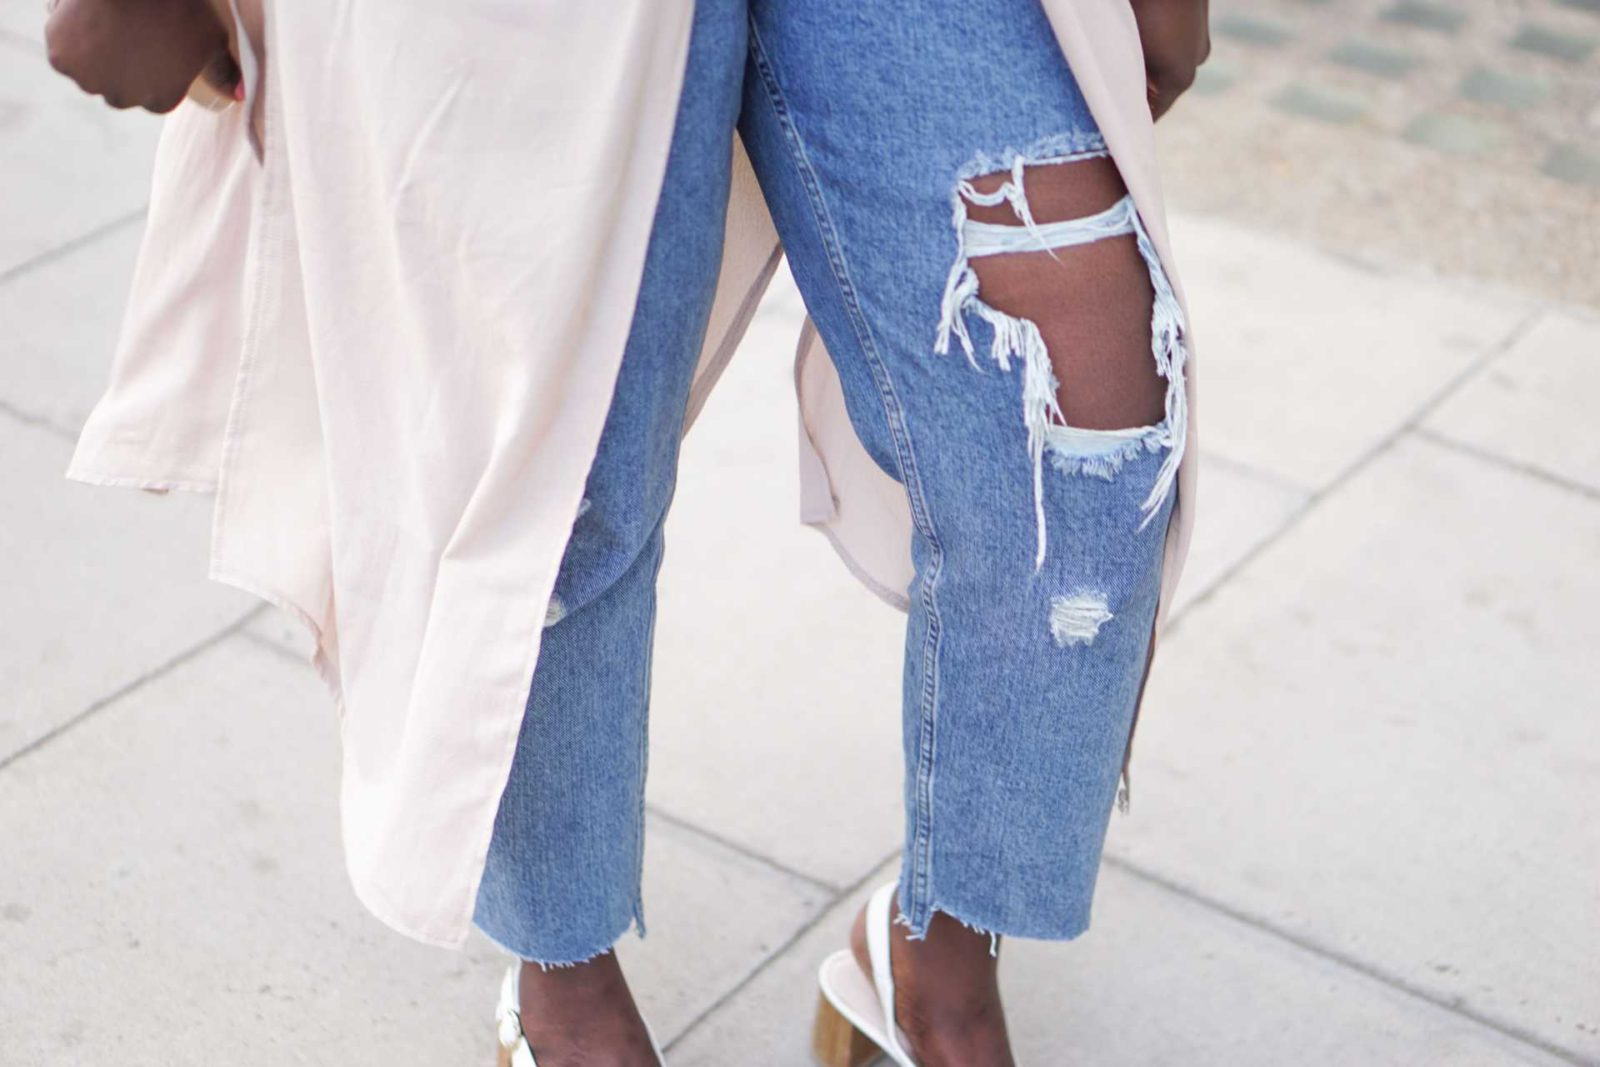 The Ripped Mom Jeans - Style and the Sass